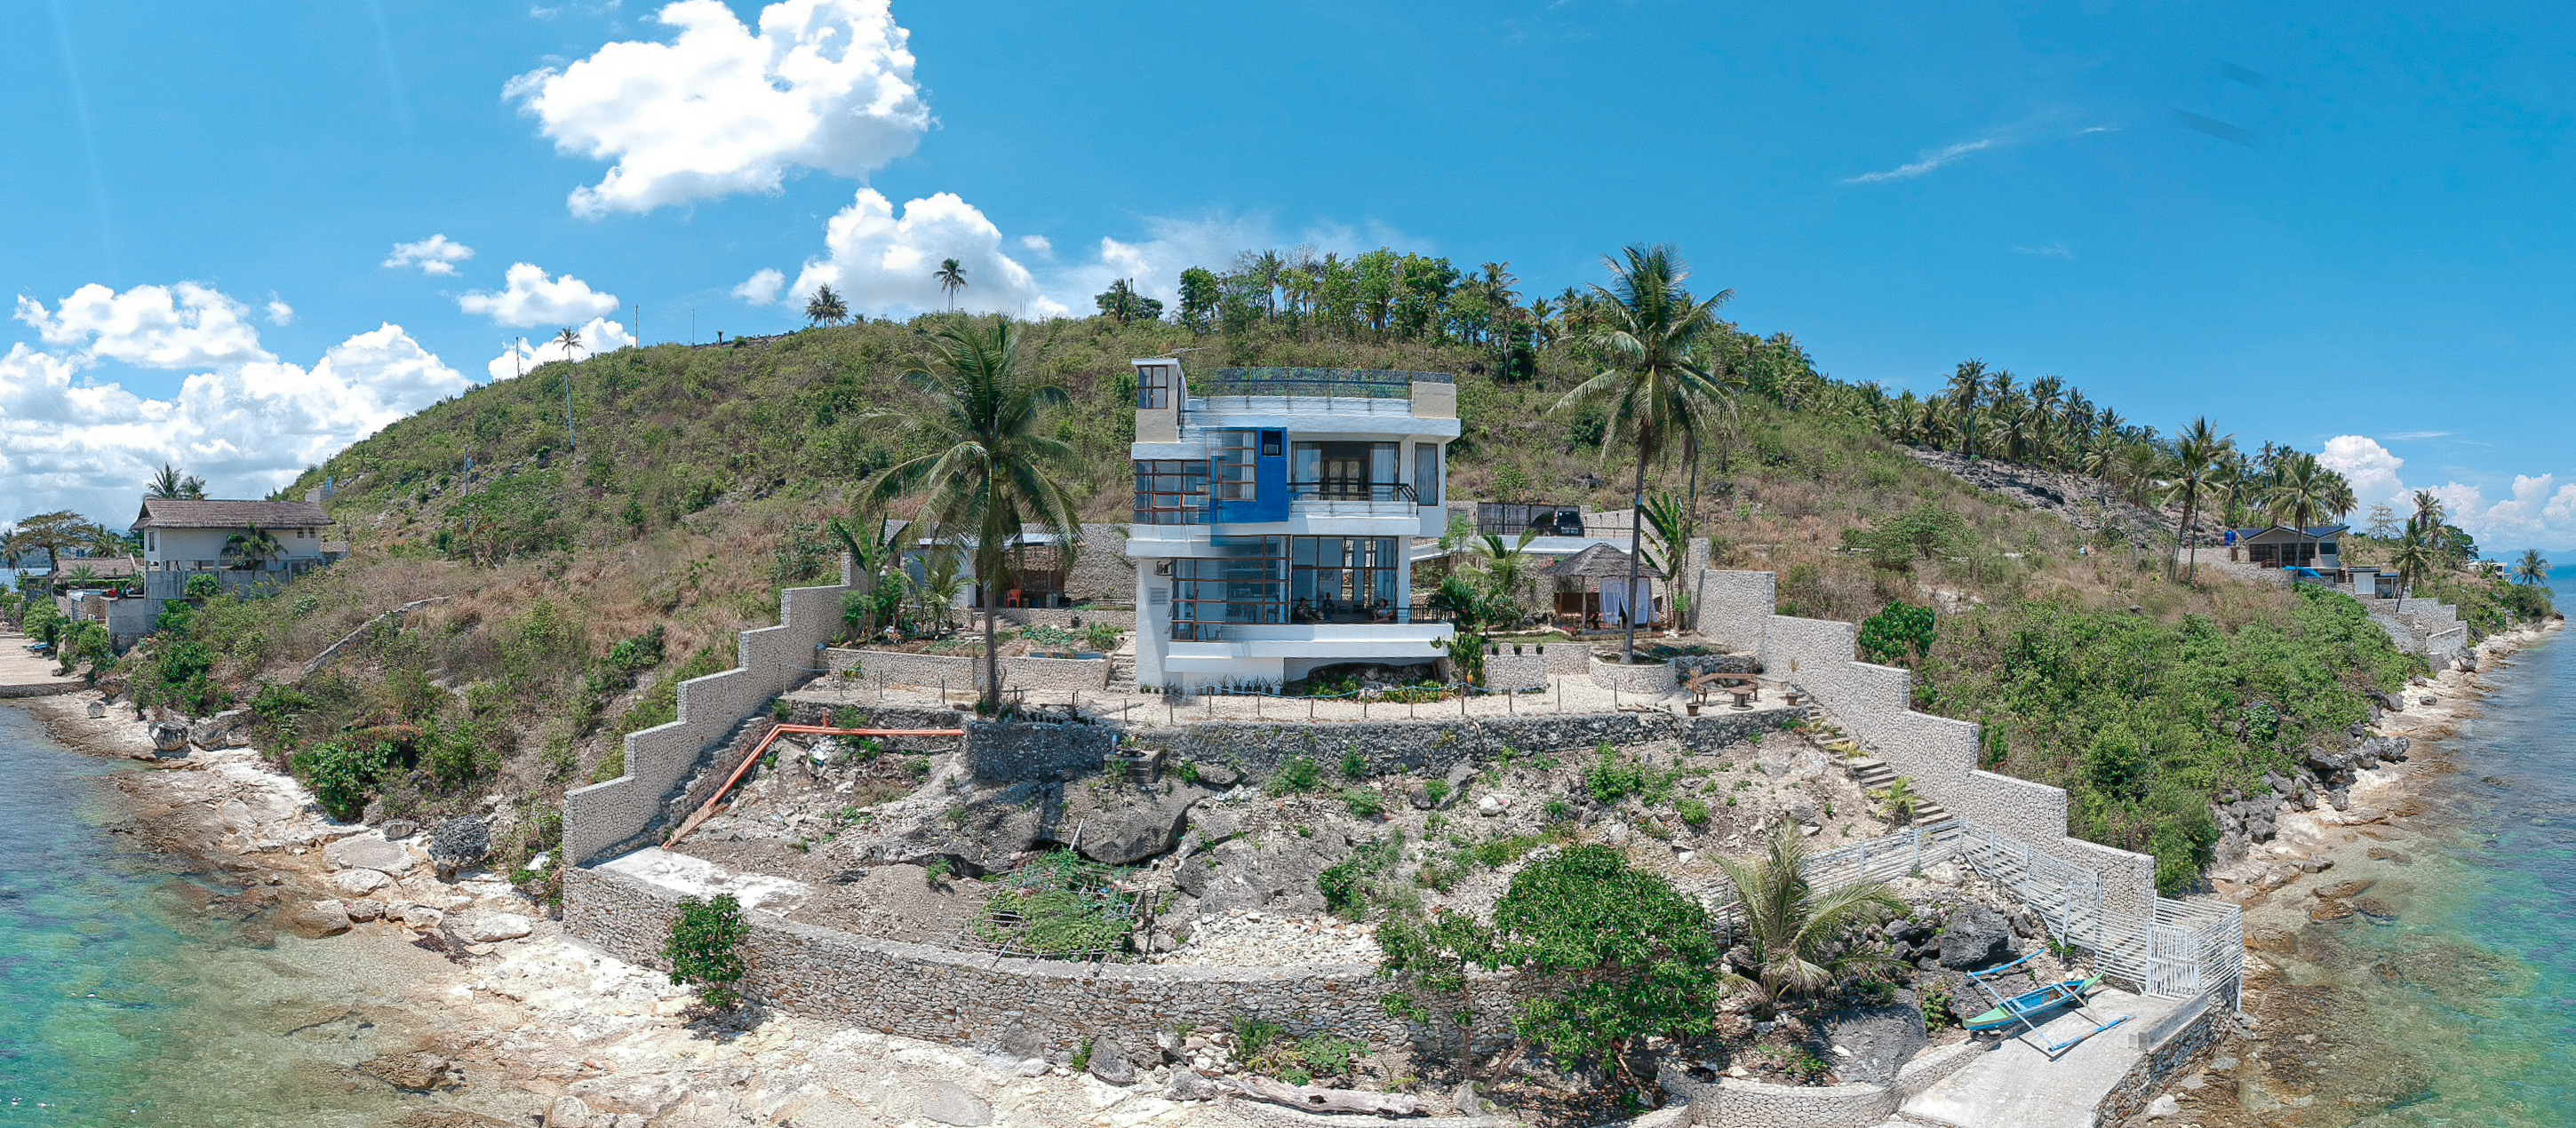 The Glass House   Beachfront Vacation Home - Houses for Rent in Dumanjug,  Central Visayas, Philippines